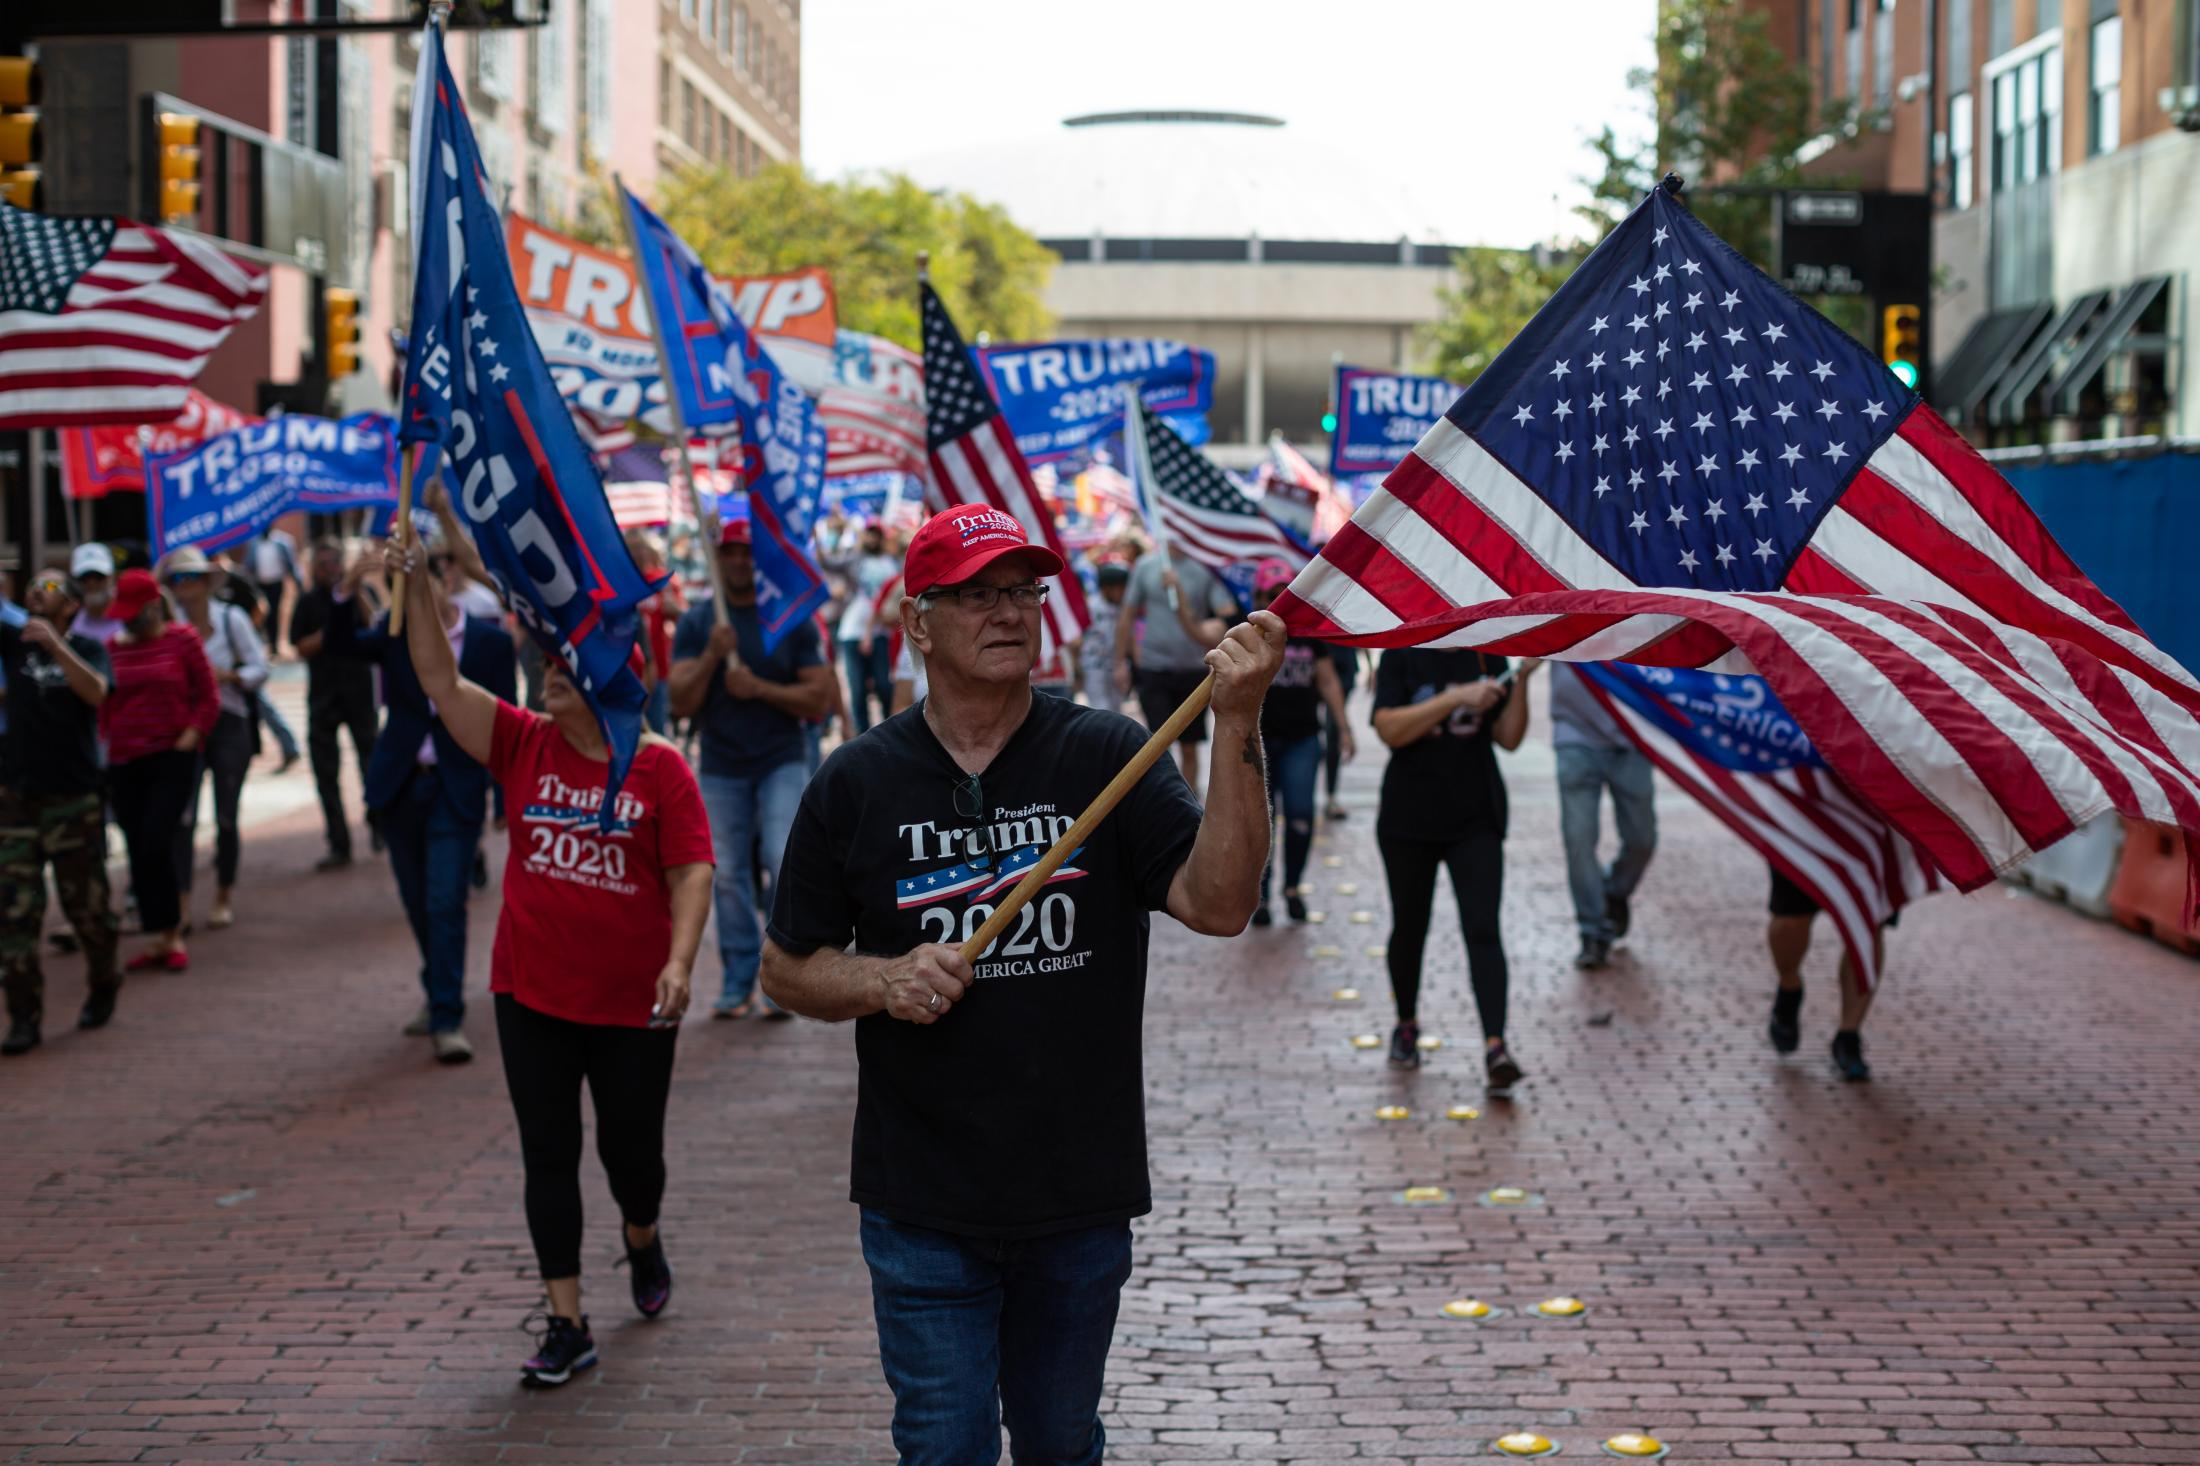 11/14/20 Fort Worth, Texas - A massive group of Trump Supporters held a rally and marched to the Fort Worth City Hall in response to the election turn out of the 2020 Presidential Election.